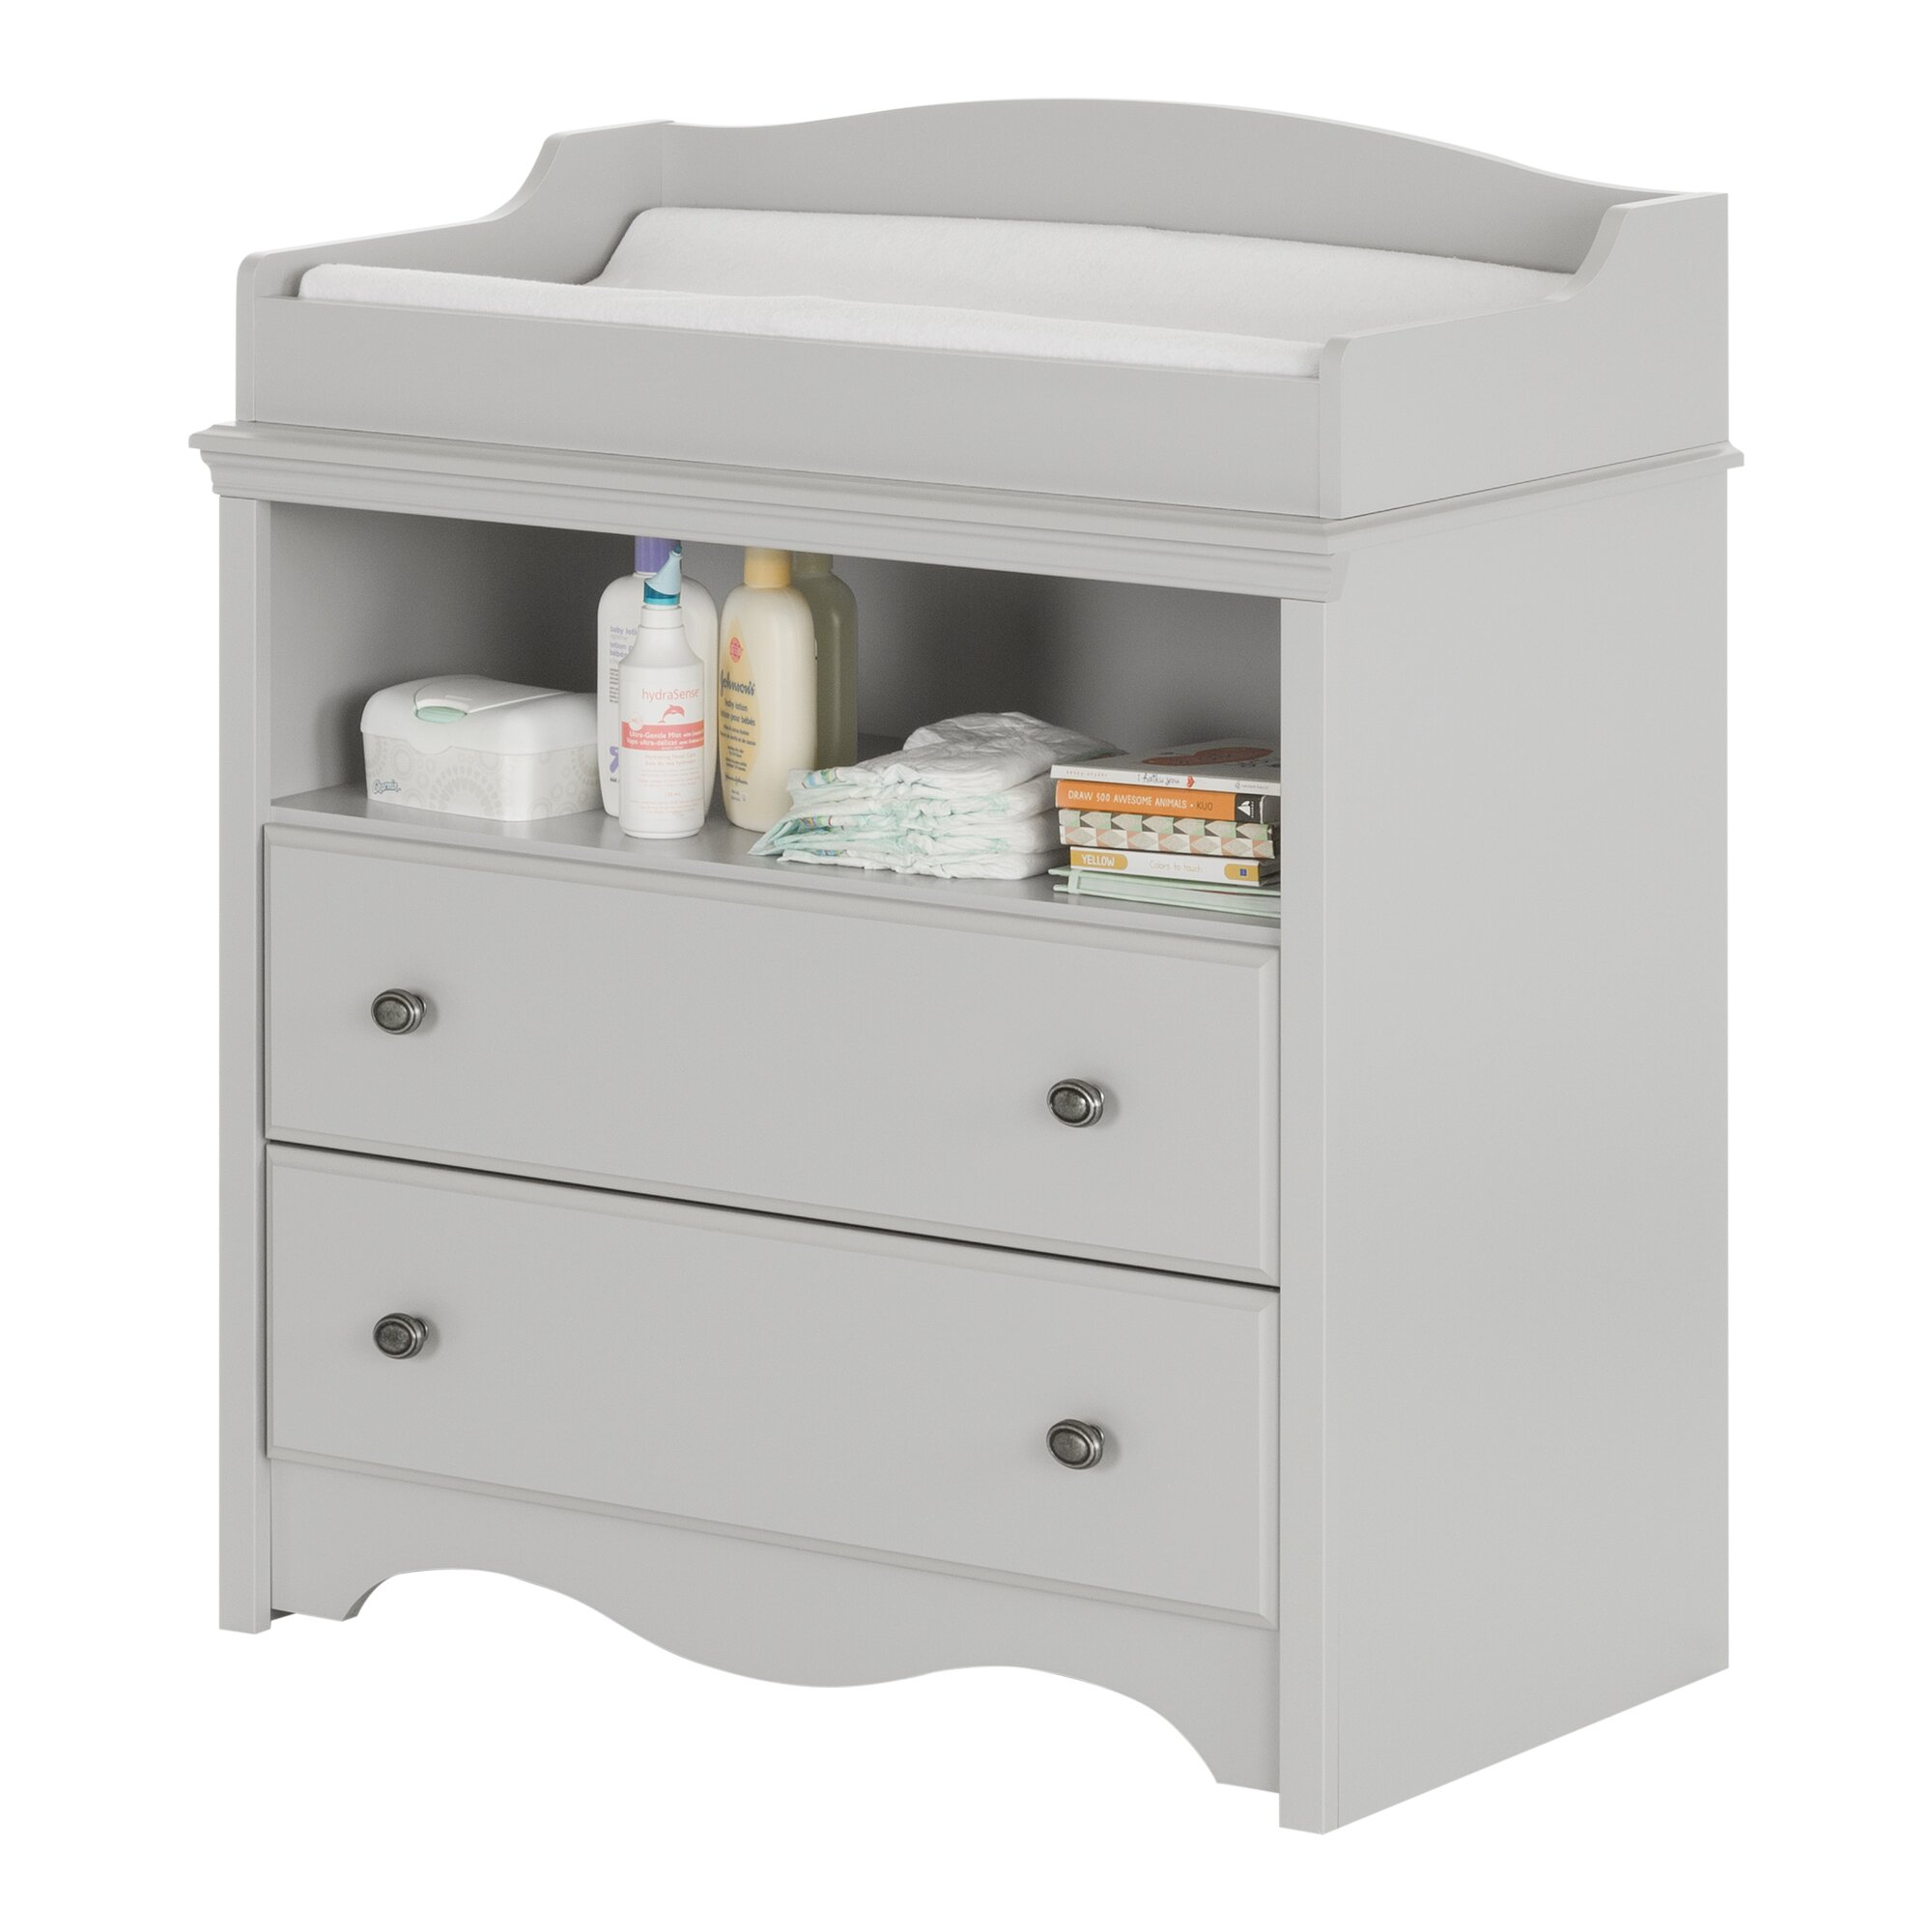 South Shore Angel Soft Gray Changing Table  Wayfair. Secretary Desk With Hutch Top. Desk Tray Sorter. Round Glass Top Patio Table. Bunk Bed With Desk Underneath For Sale. Craigslist Desk Chair. Diy Height Adjustable Desk. Under The Desk Exercise Equipment. Wooden 4 Drawer File Cabinet